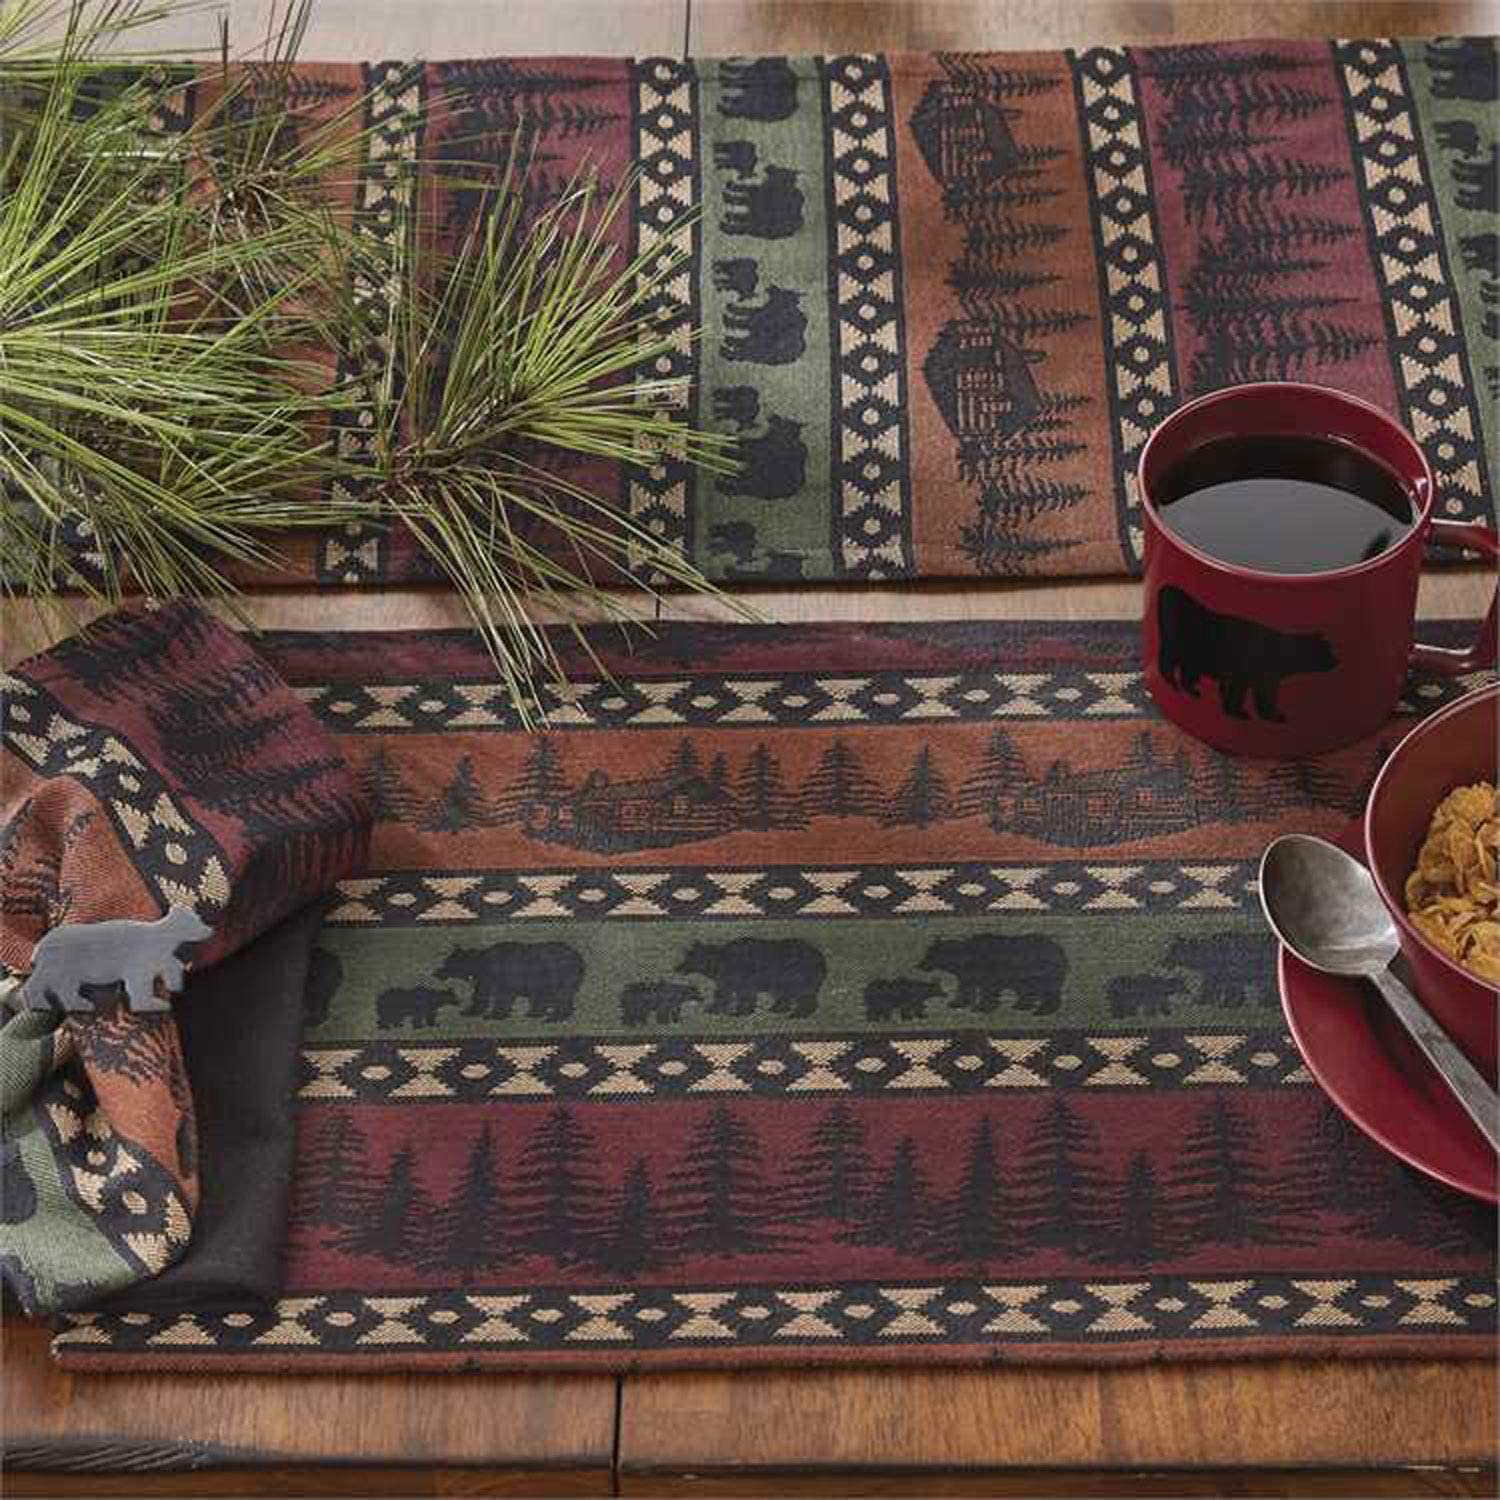 Park Designs Mountain Bear Lodge Style Placemat Set of 4